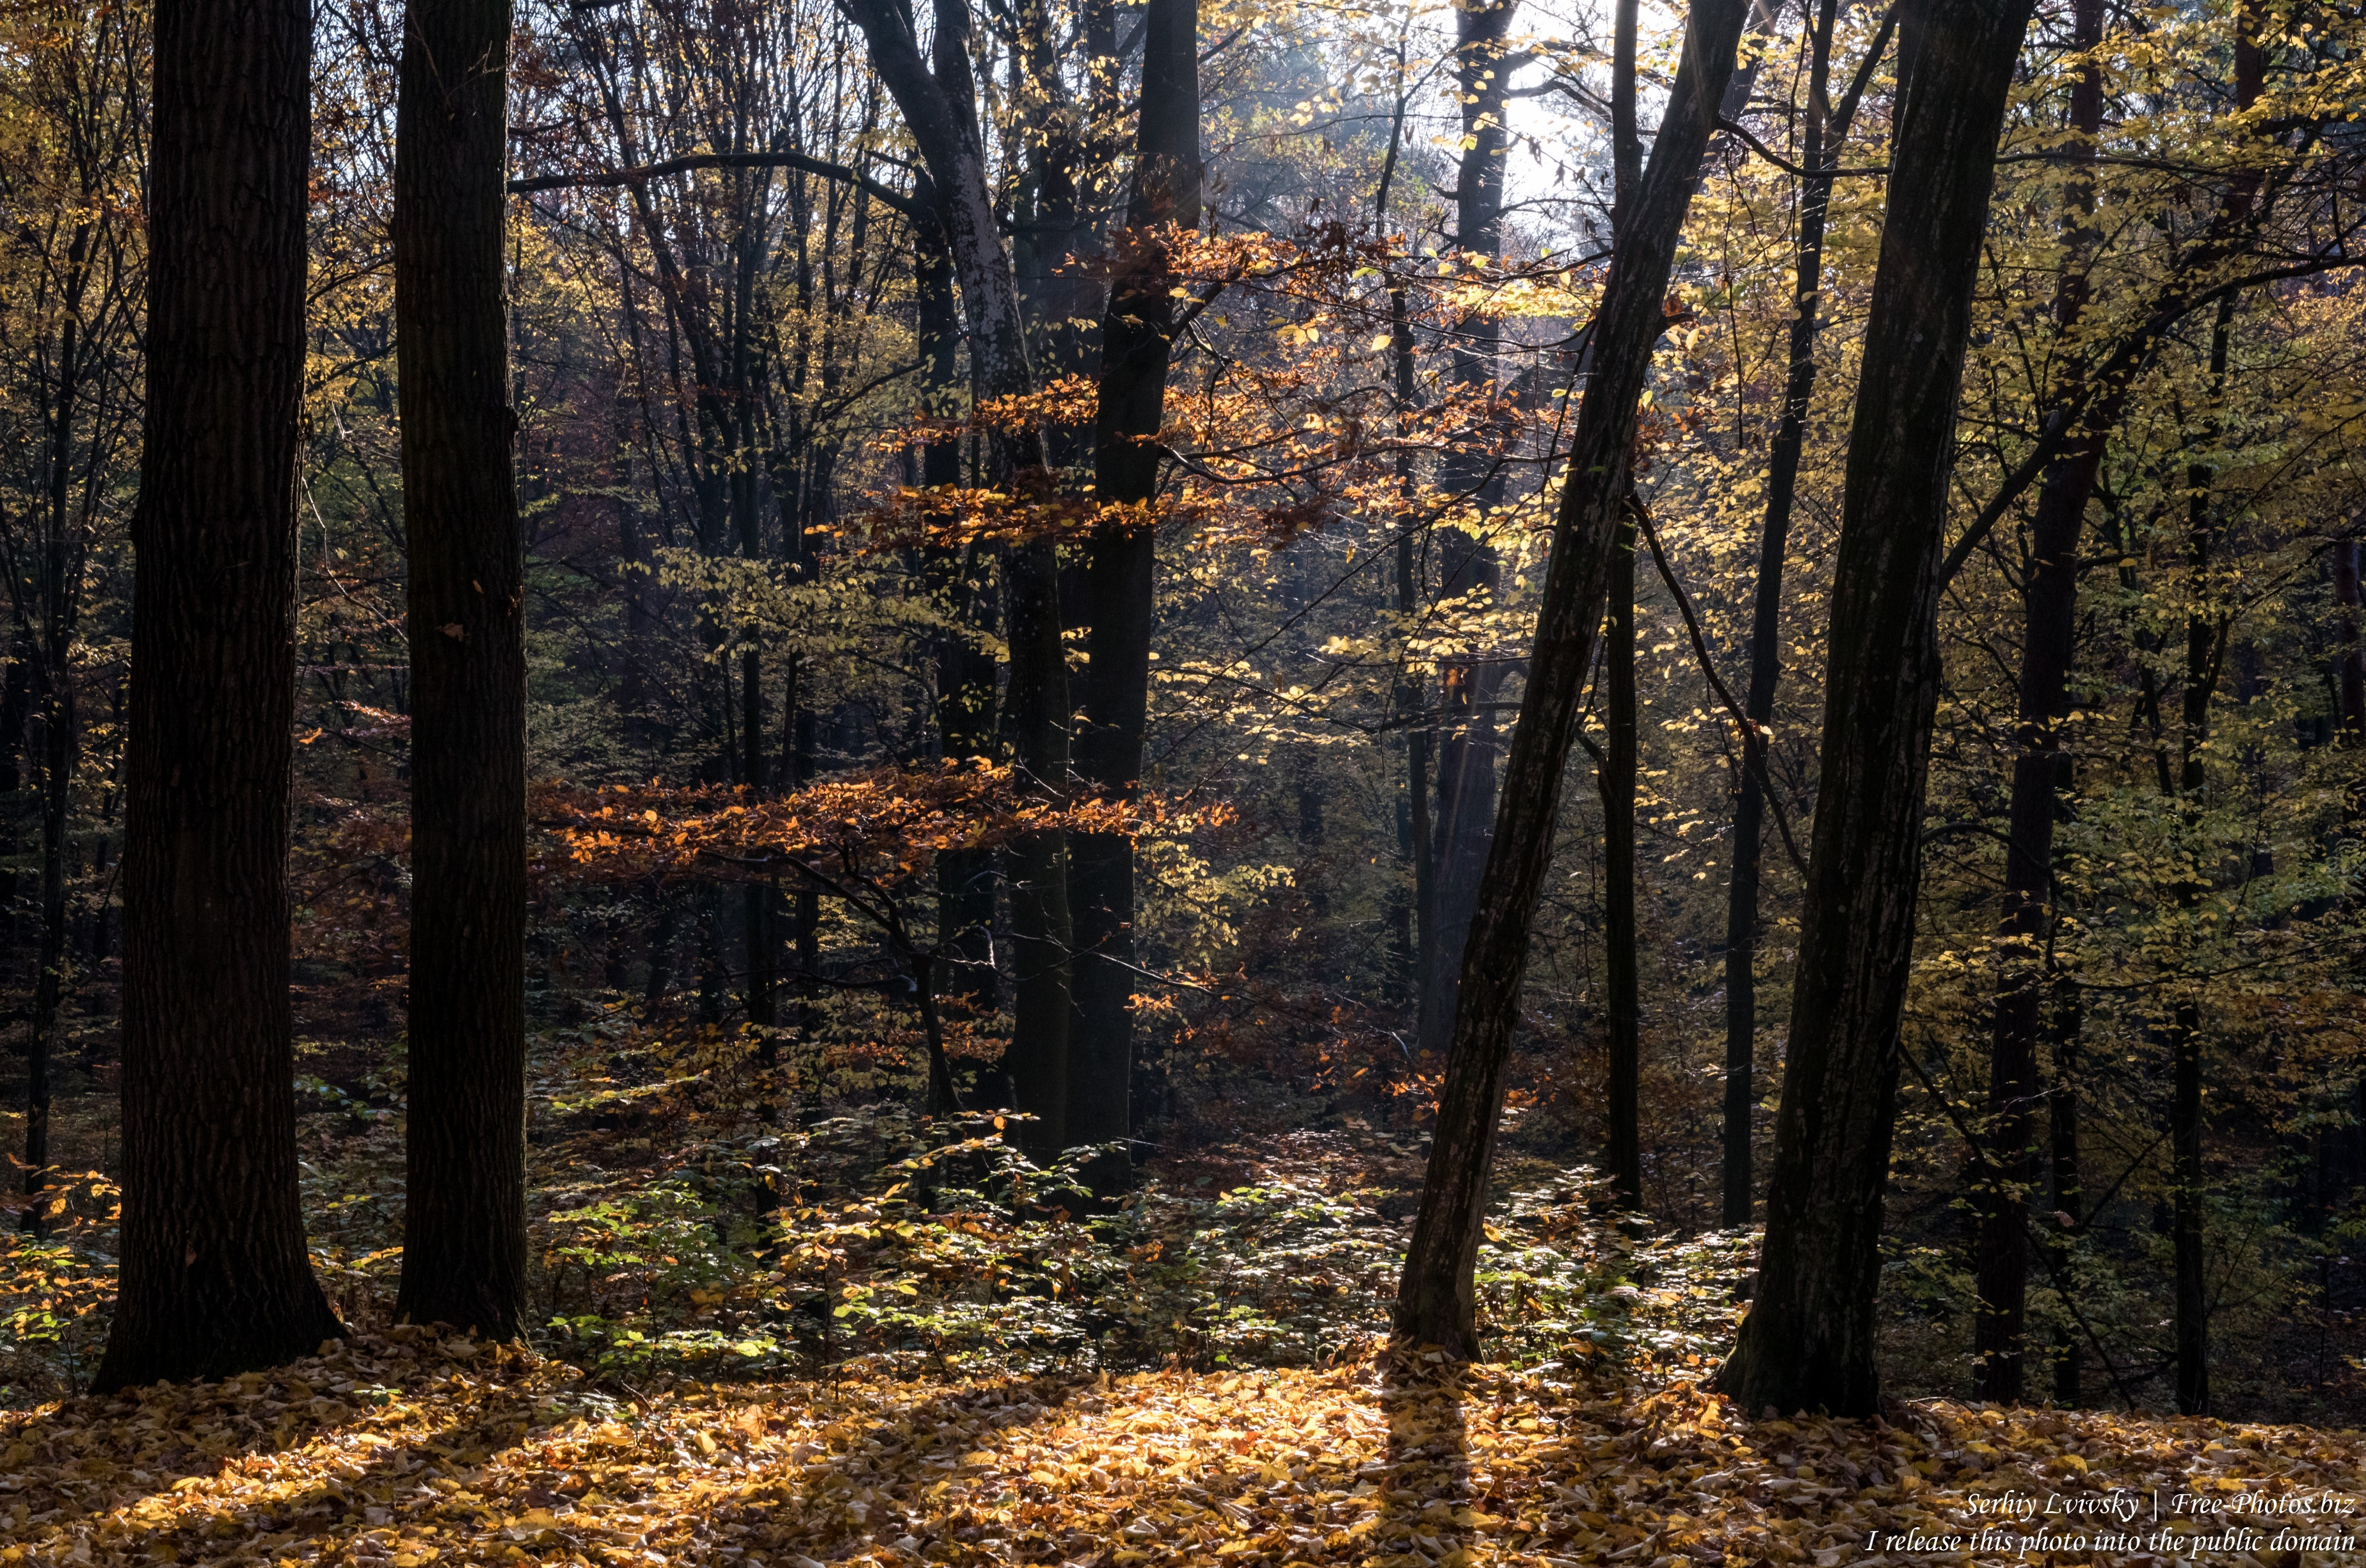 nature in Lviv region of Ukraine photographed in October 2019 by Serhiy Lvivsky, picture 3